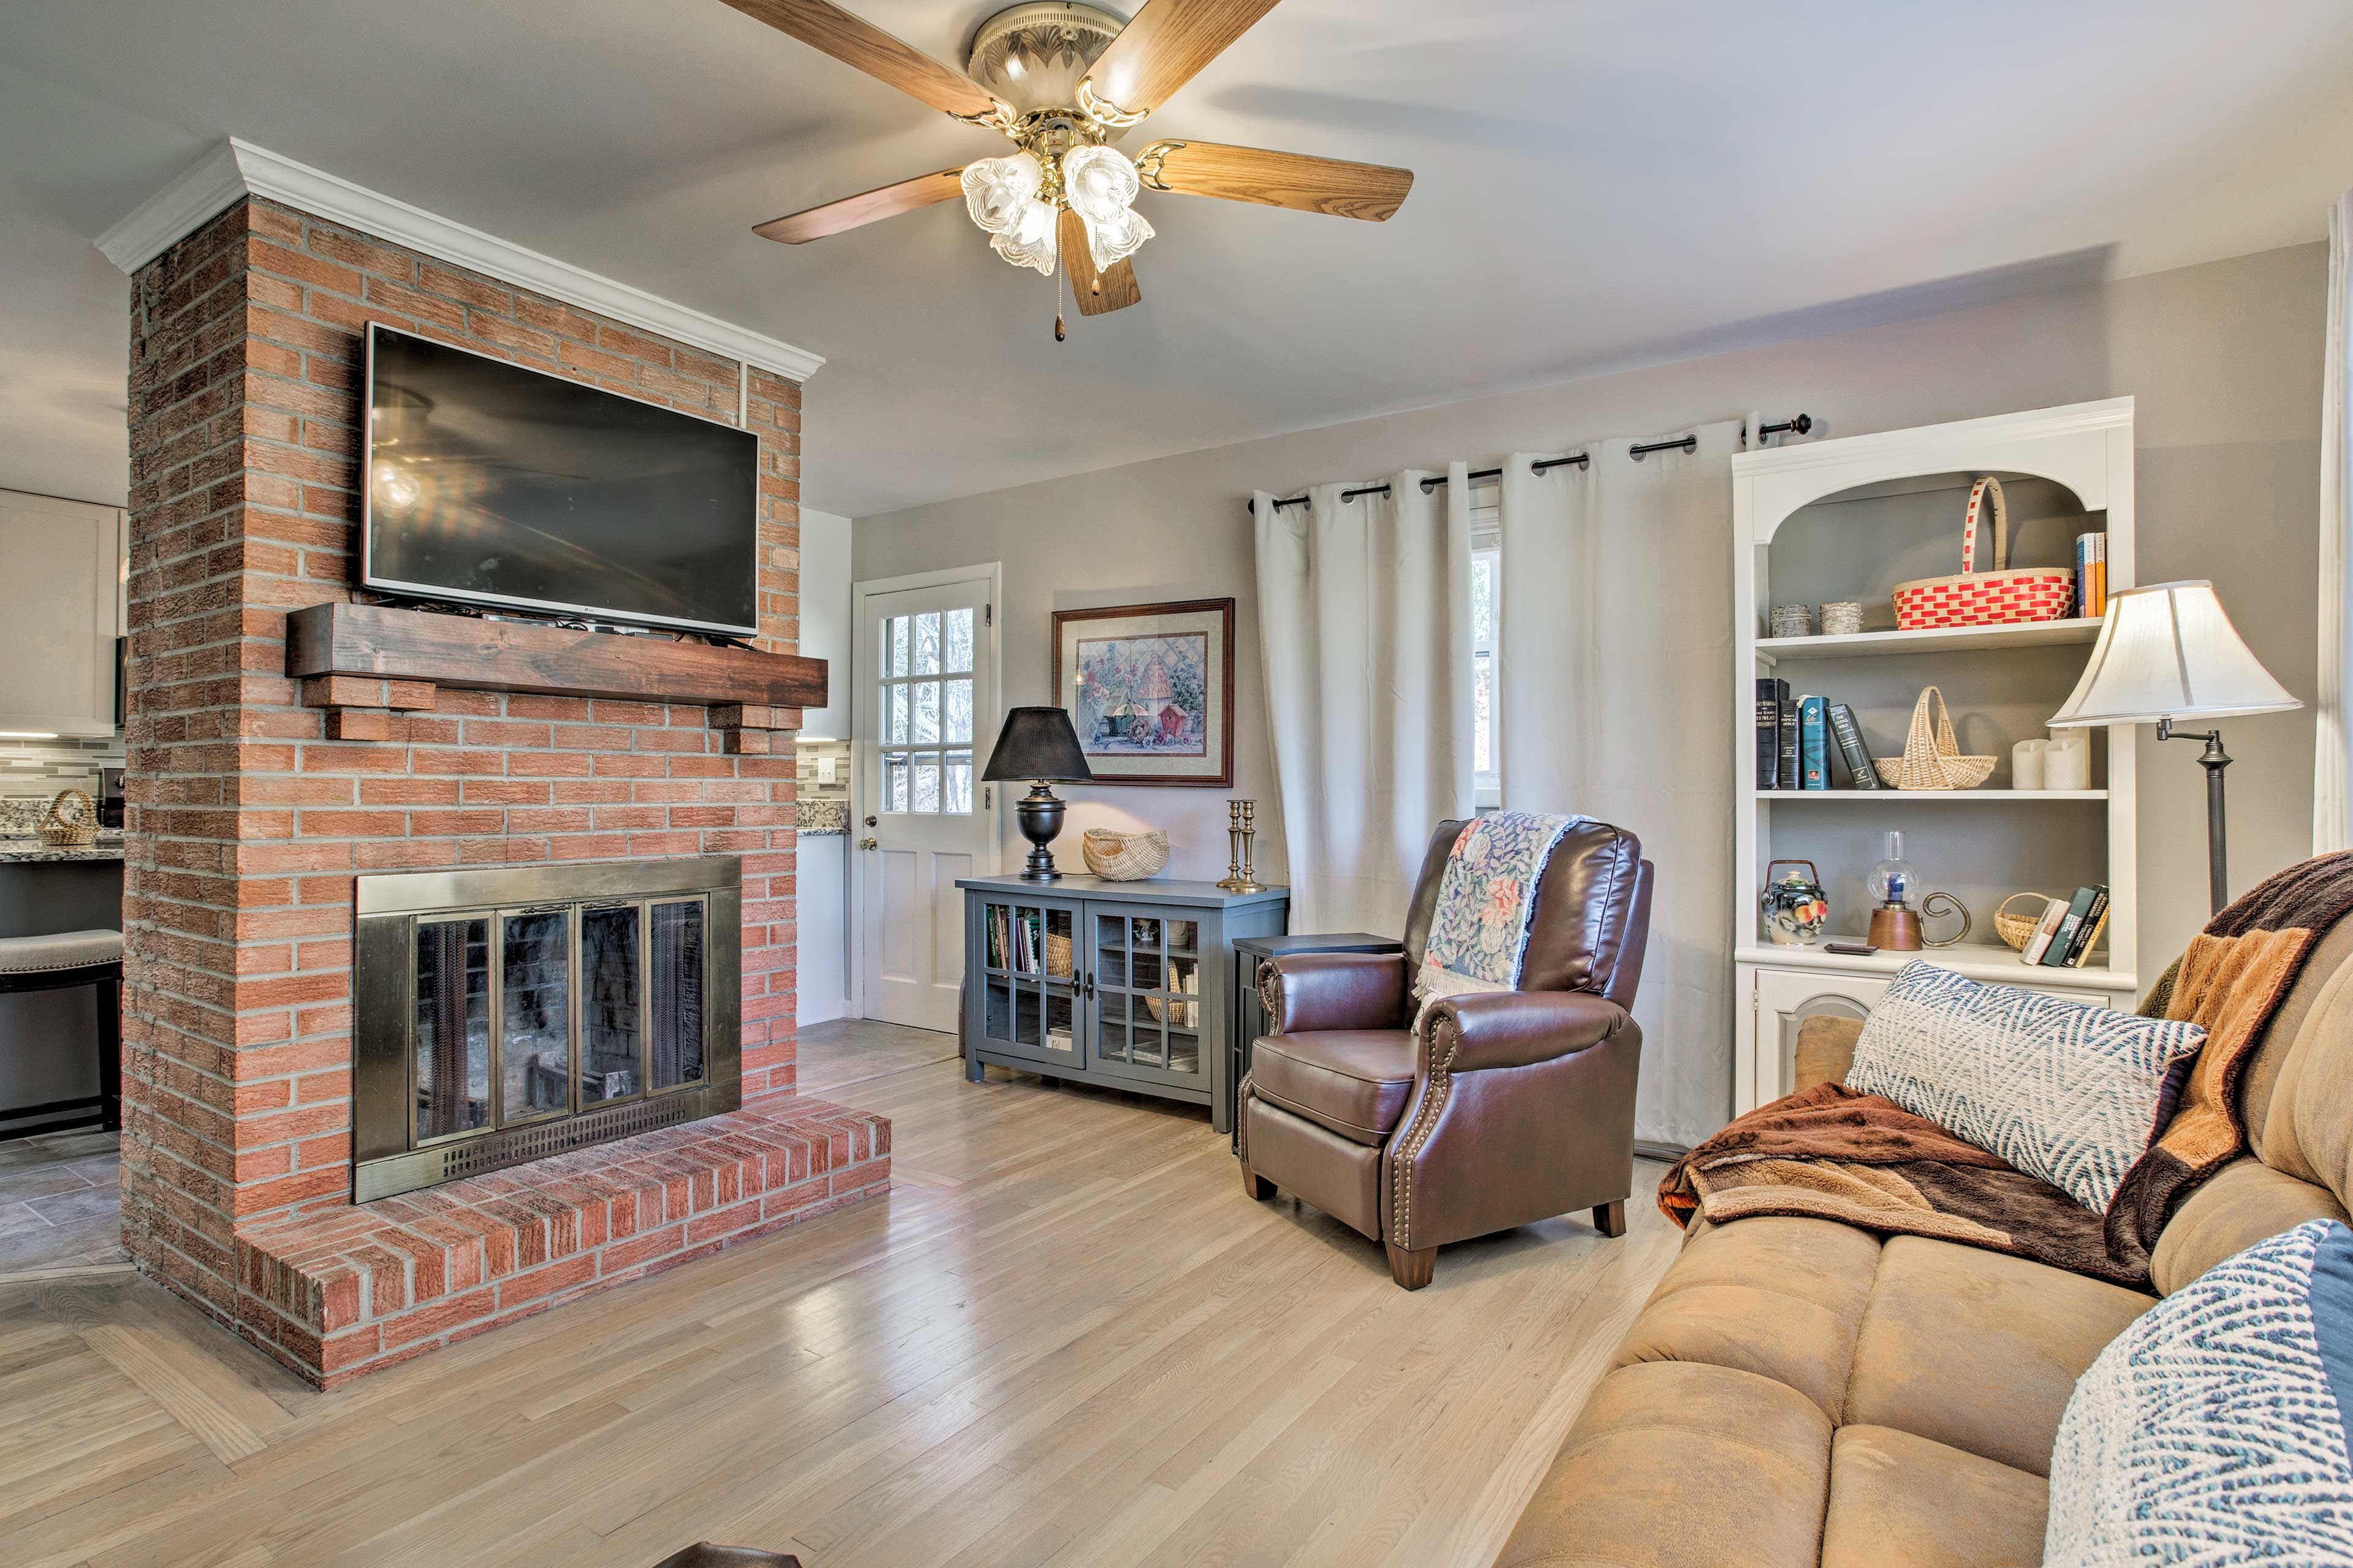 Enjoy over 1,000 square feet of freshly updated living space.